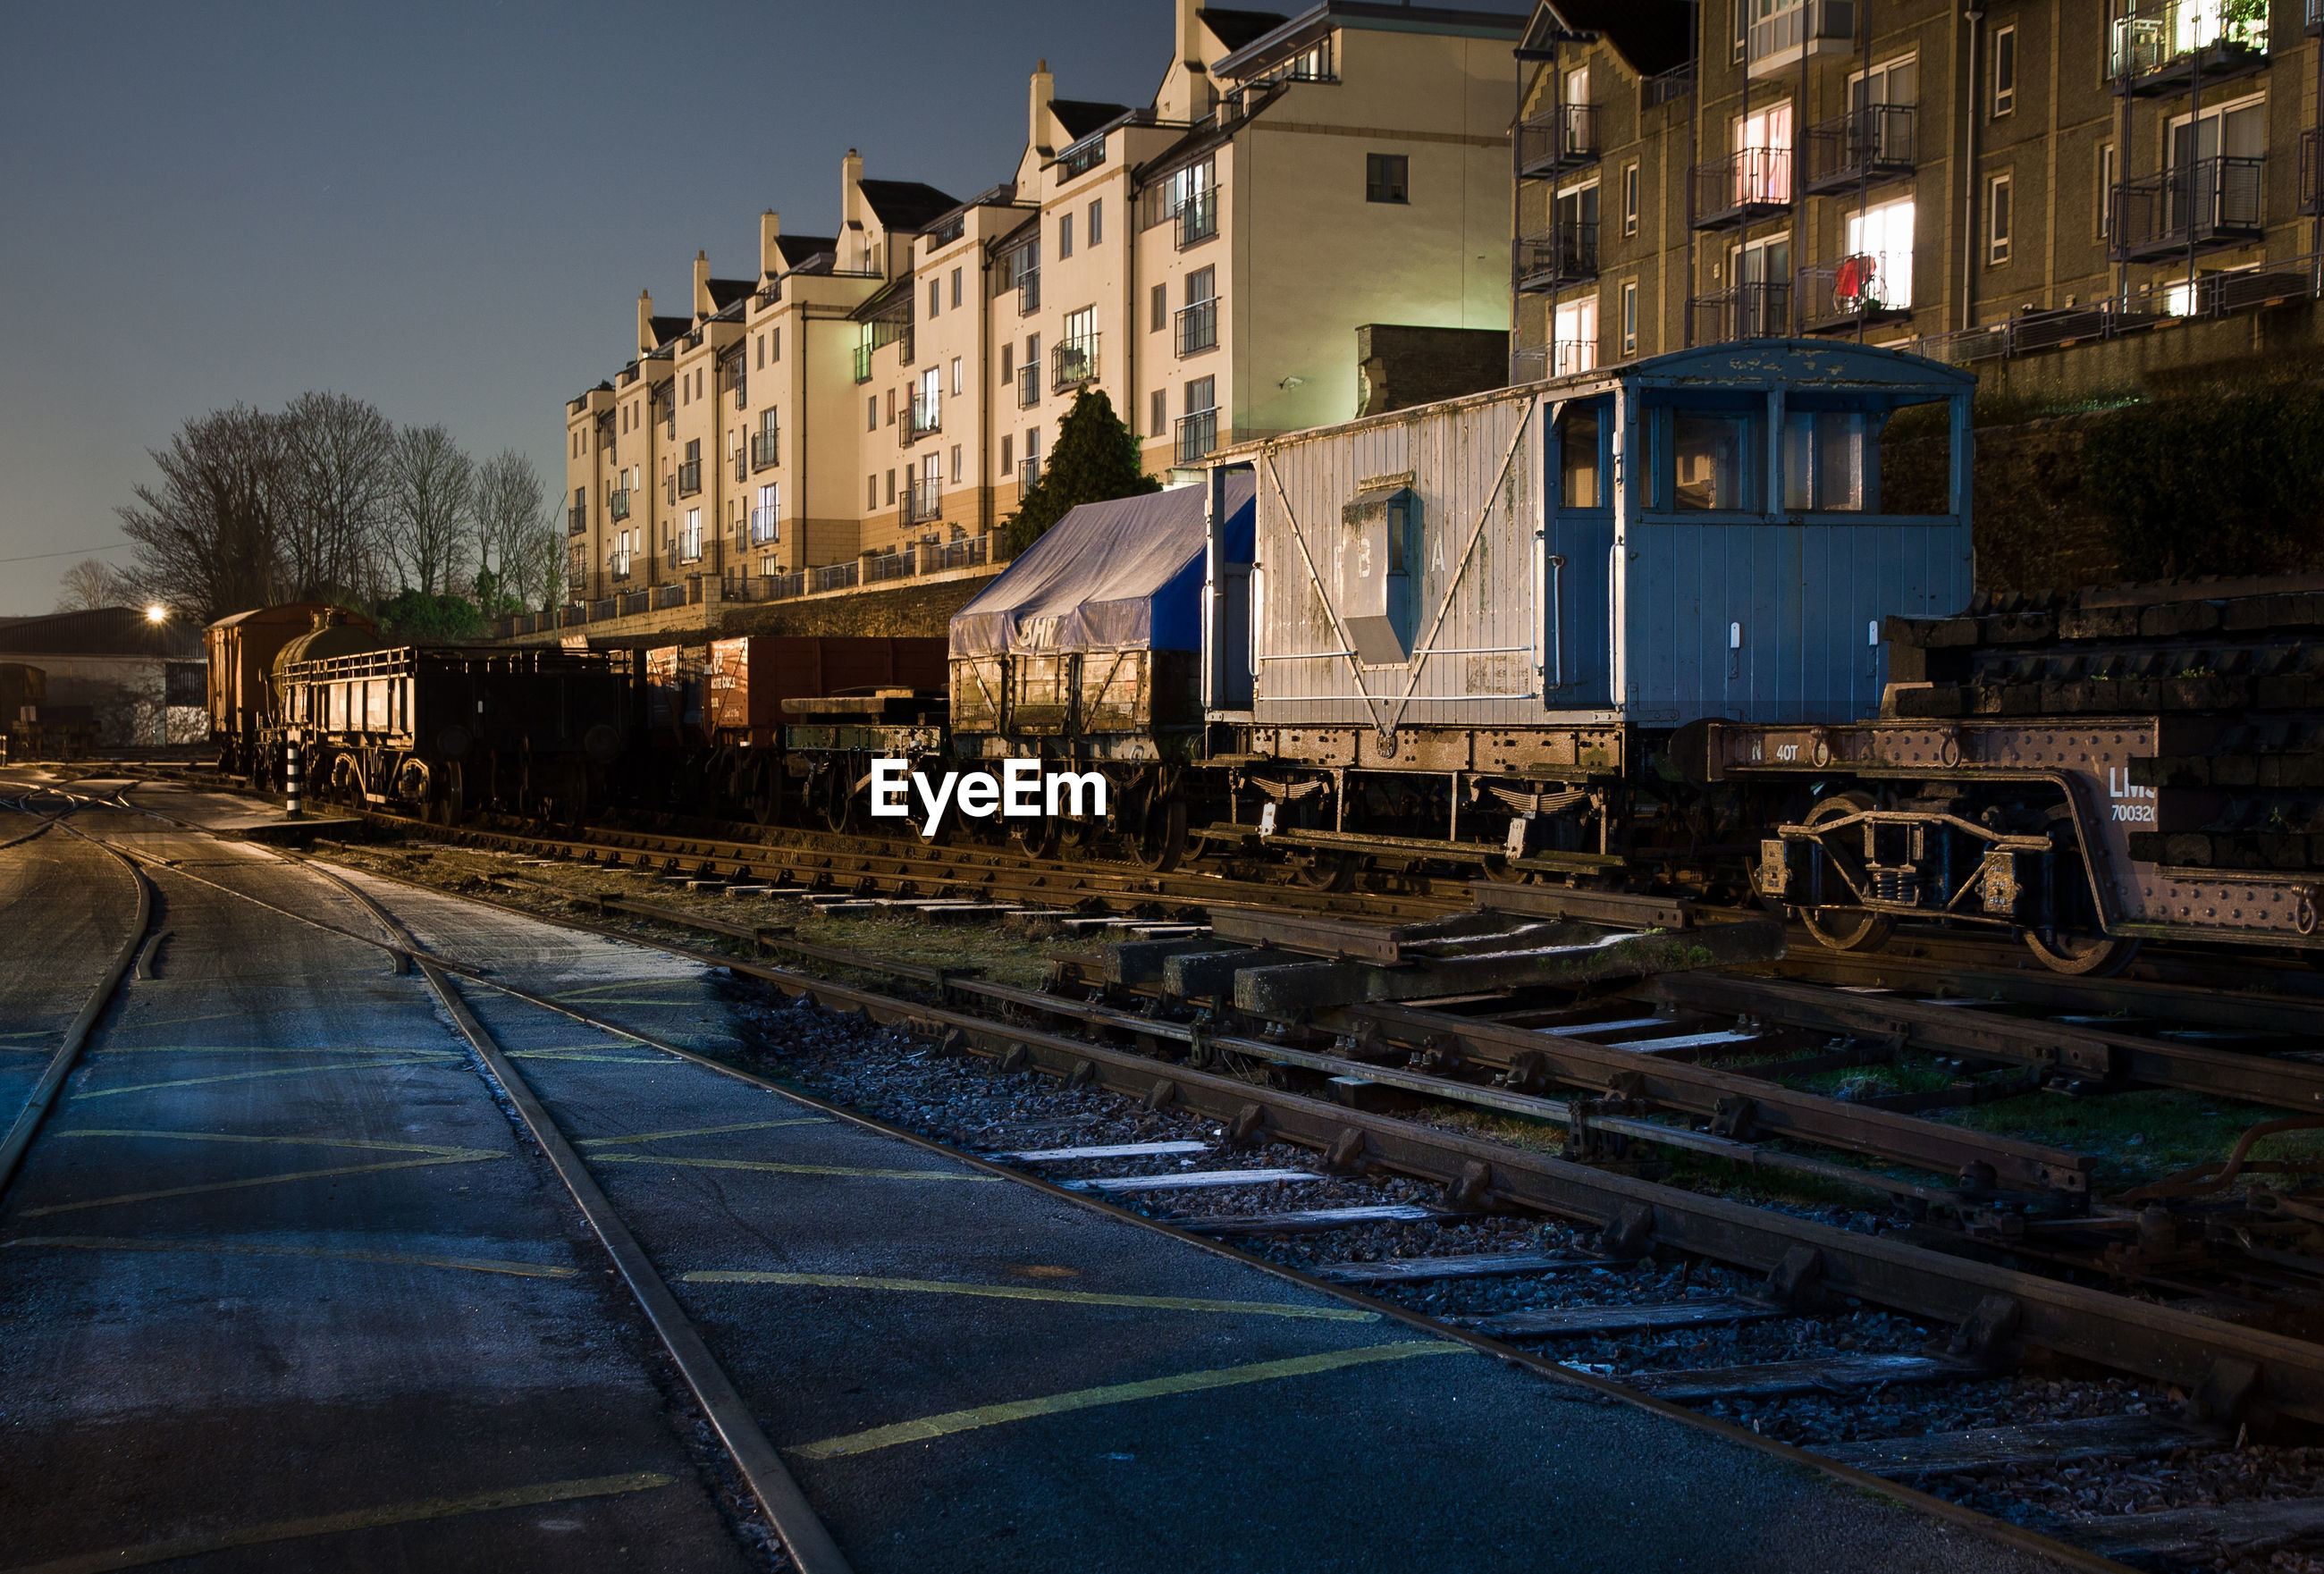 Freight trains on railroad tracks by buildings at night